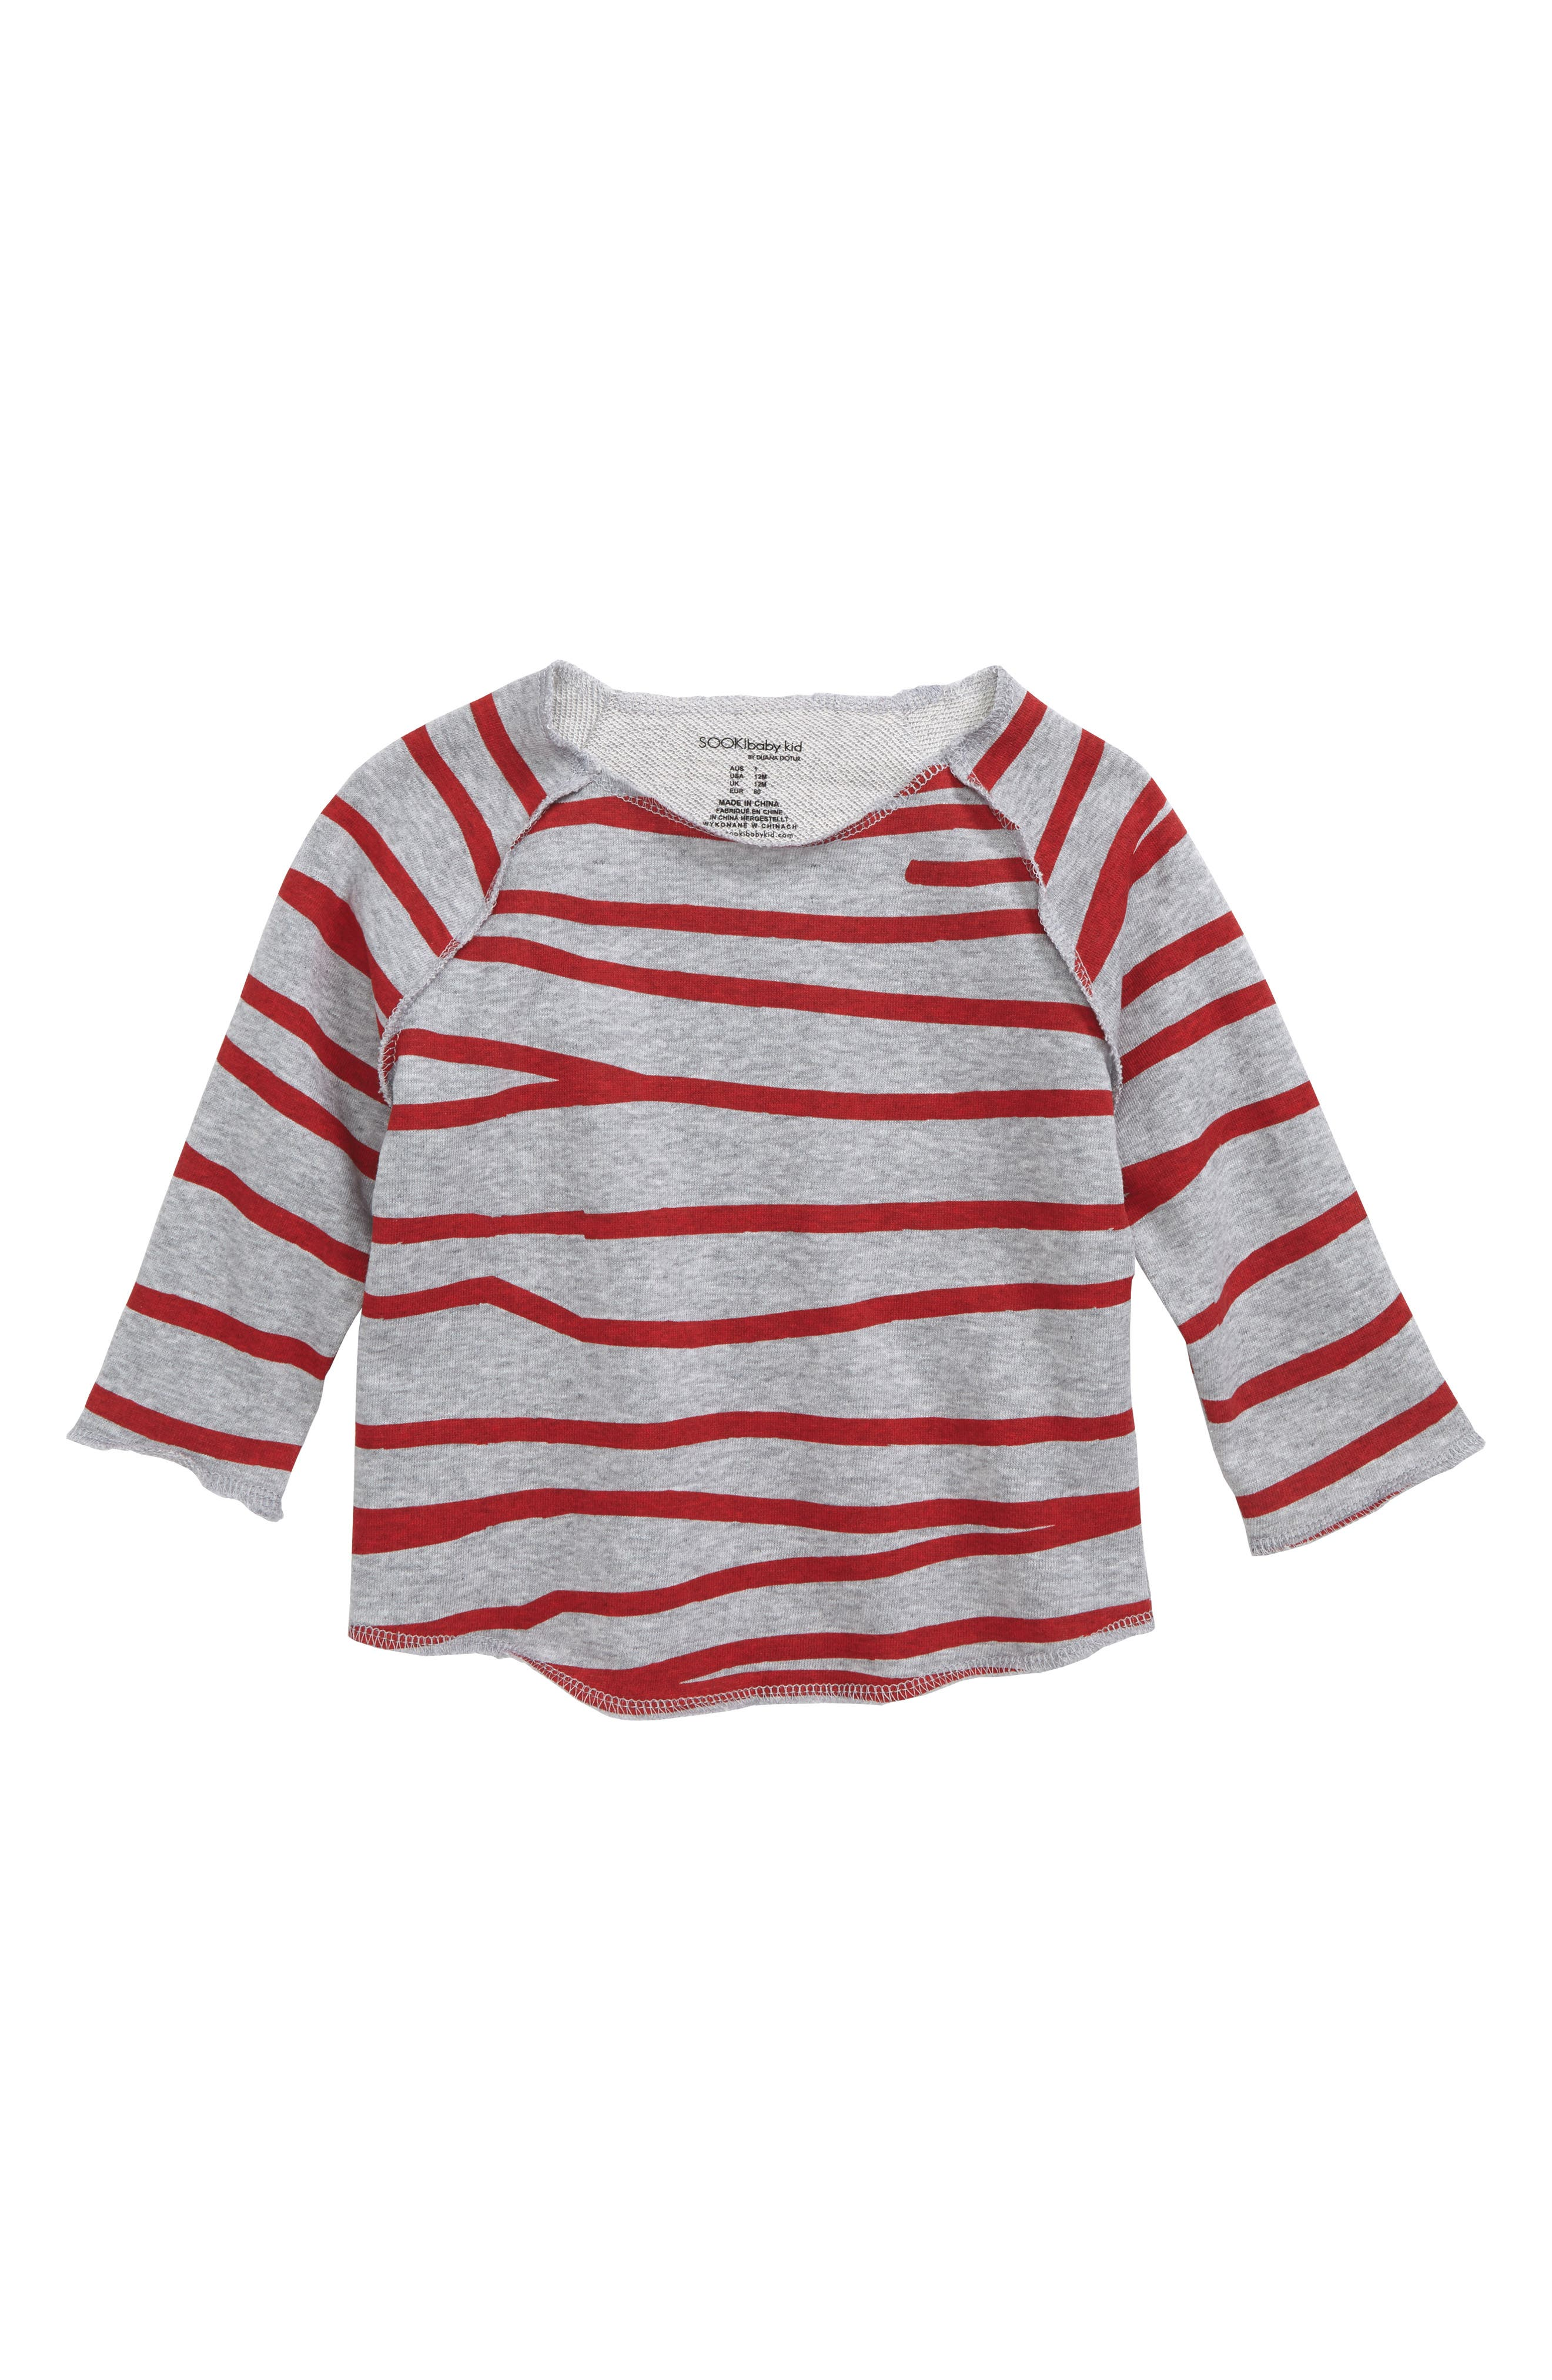 Stripe Shirt,                         Main,                         color, Grey Marle/ Red